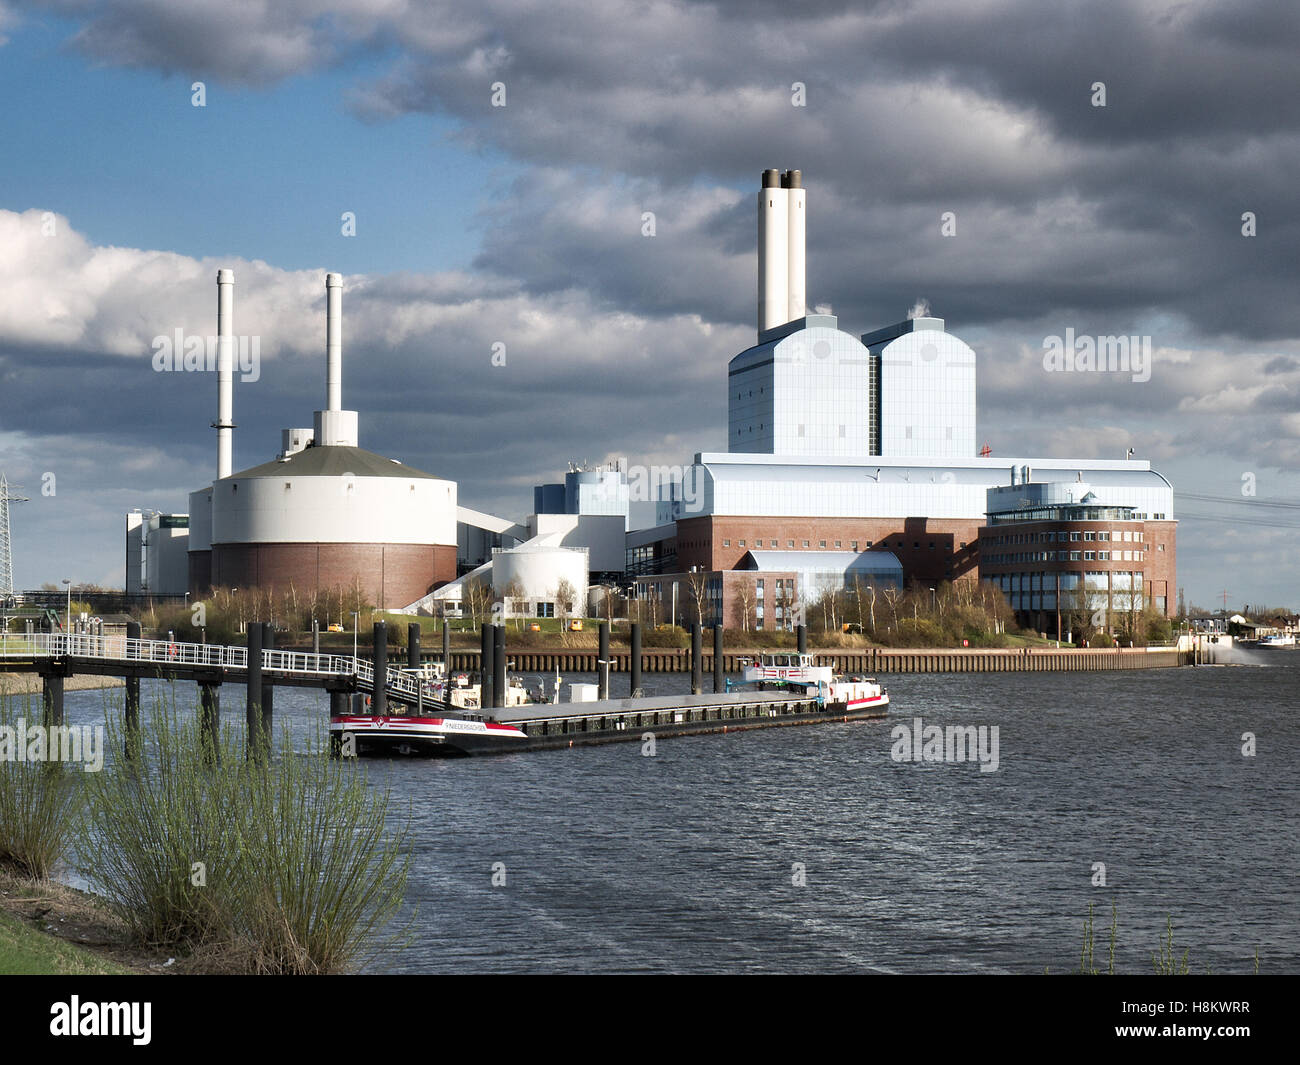 Vattenfall coal-fired power plant Tiefstack at the Elbe in Hamburg, Germany. - Stock Image